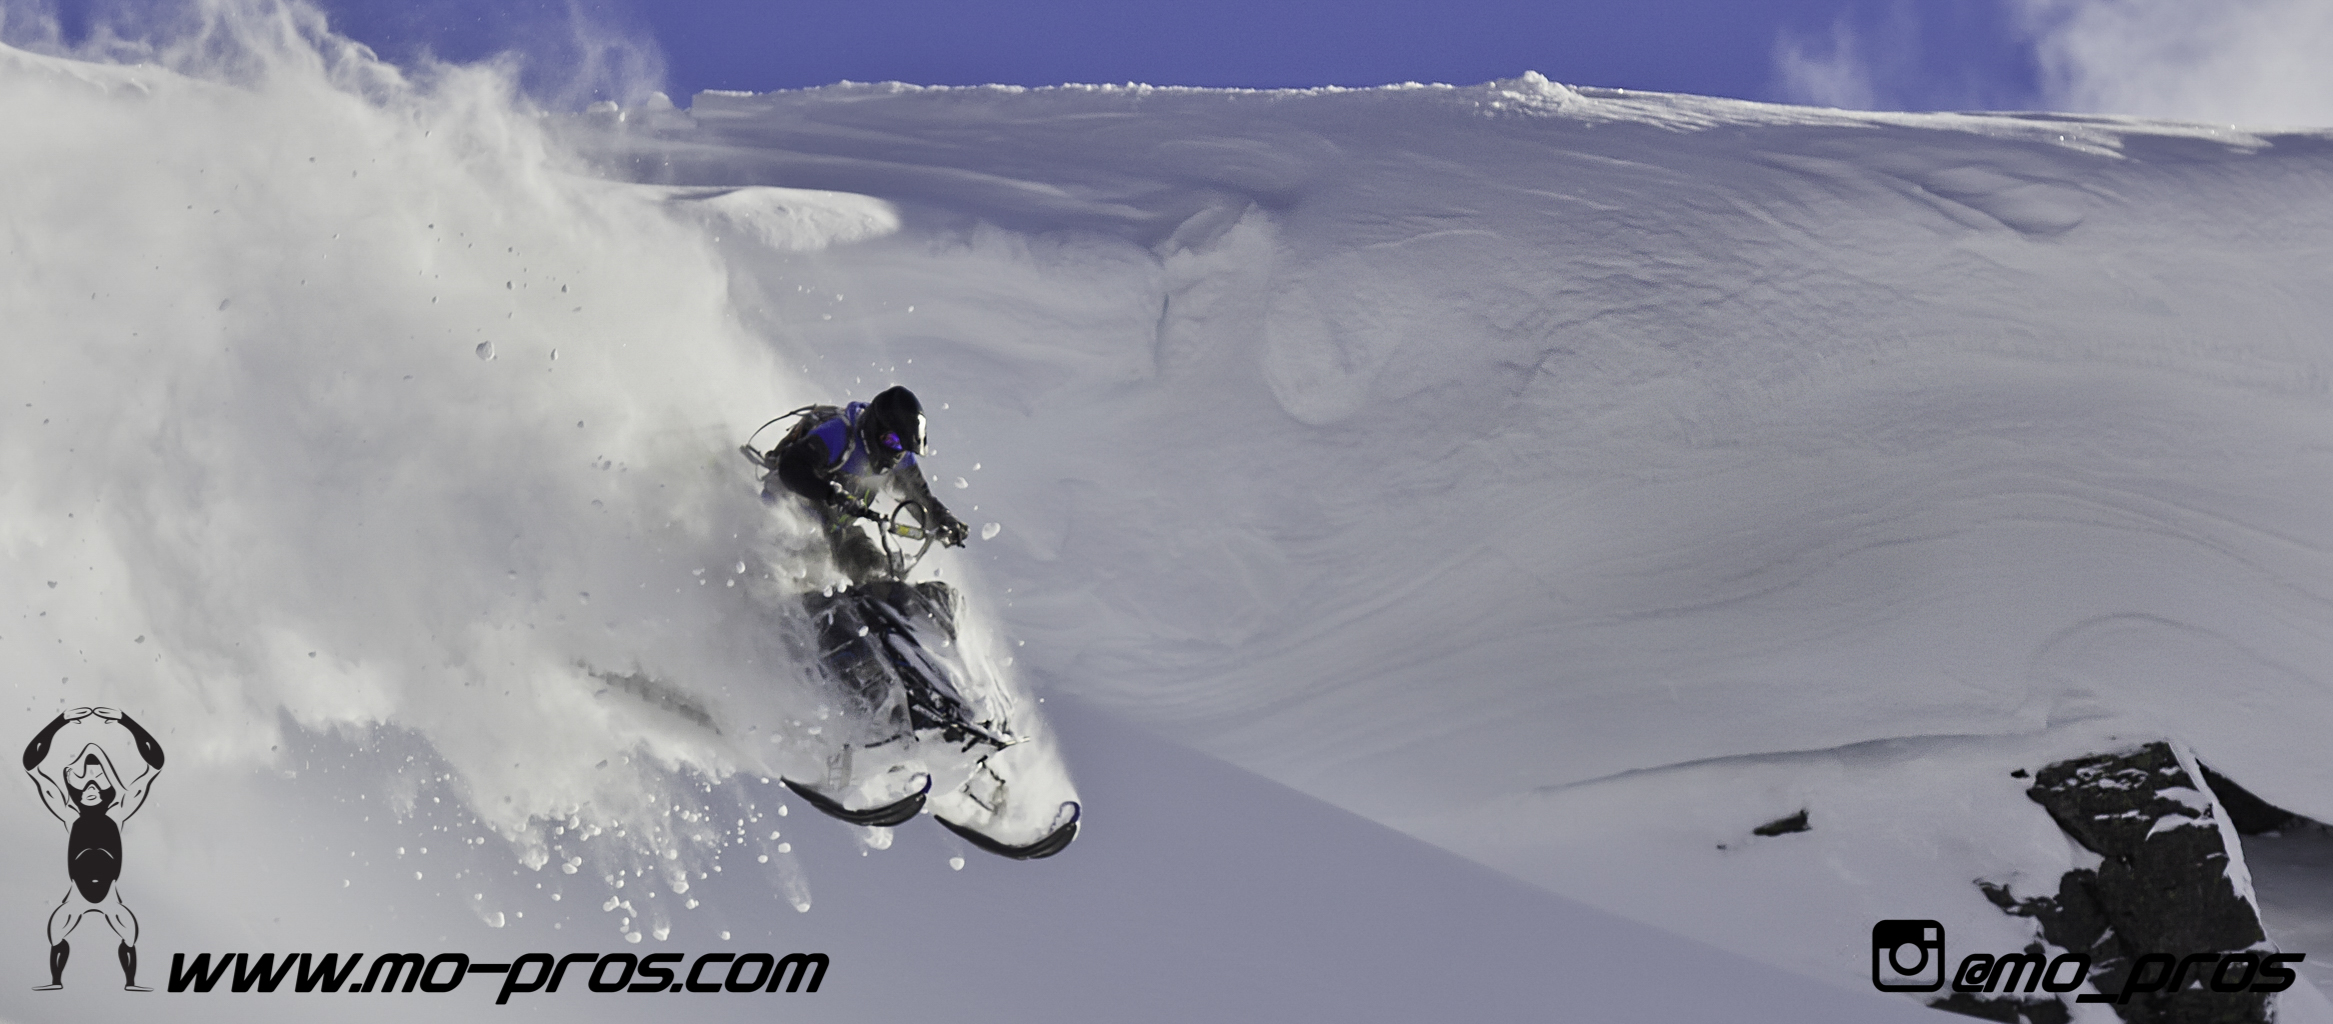 114_Backcountry _Backcountry United_Rack_Ski_Snowbike_Timbersled Rack_Tsaina Rack_CFR rack_Cheetah Factory Racing_gas Rack_Gear_Gun Rack_LinQ Snowboard Ski_Snowboard rack_snowboard_Snowboarding_snowm.jpg